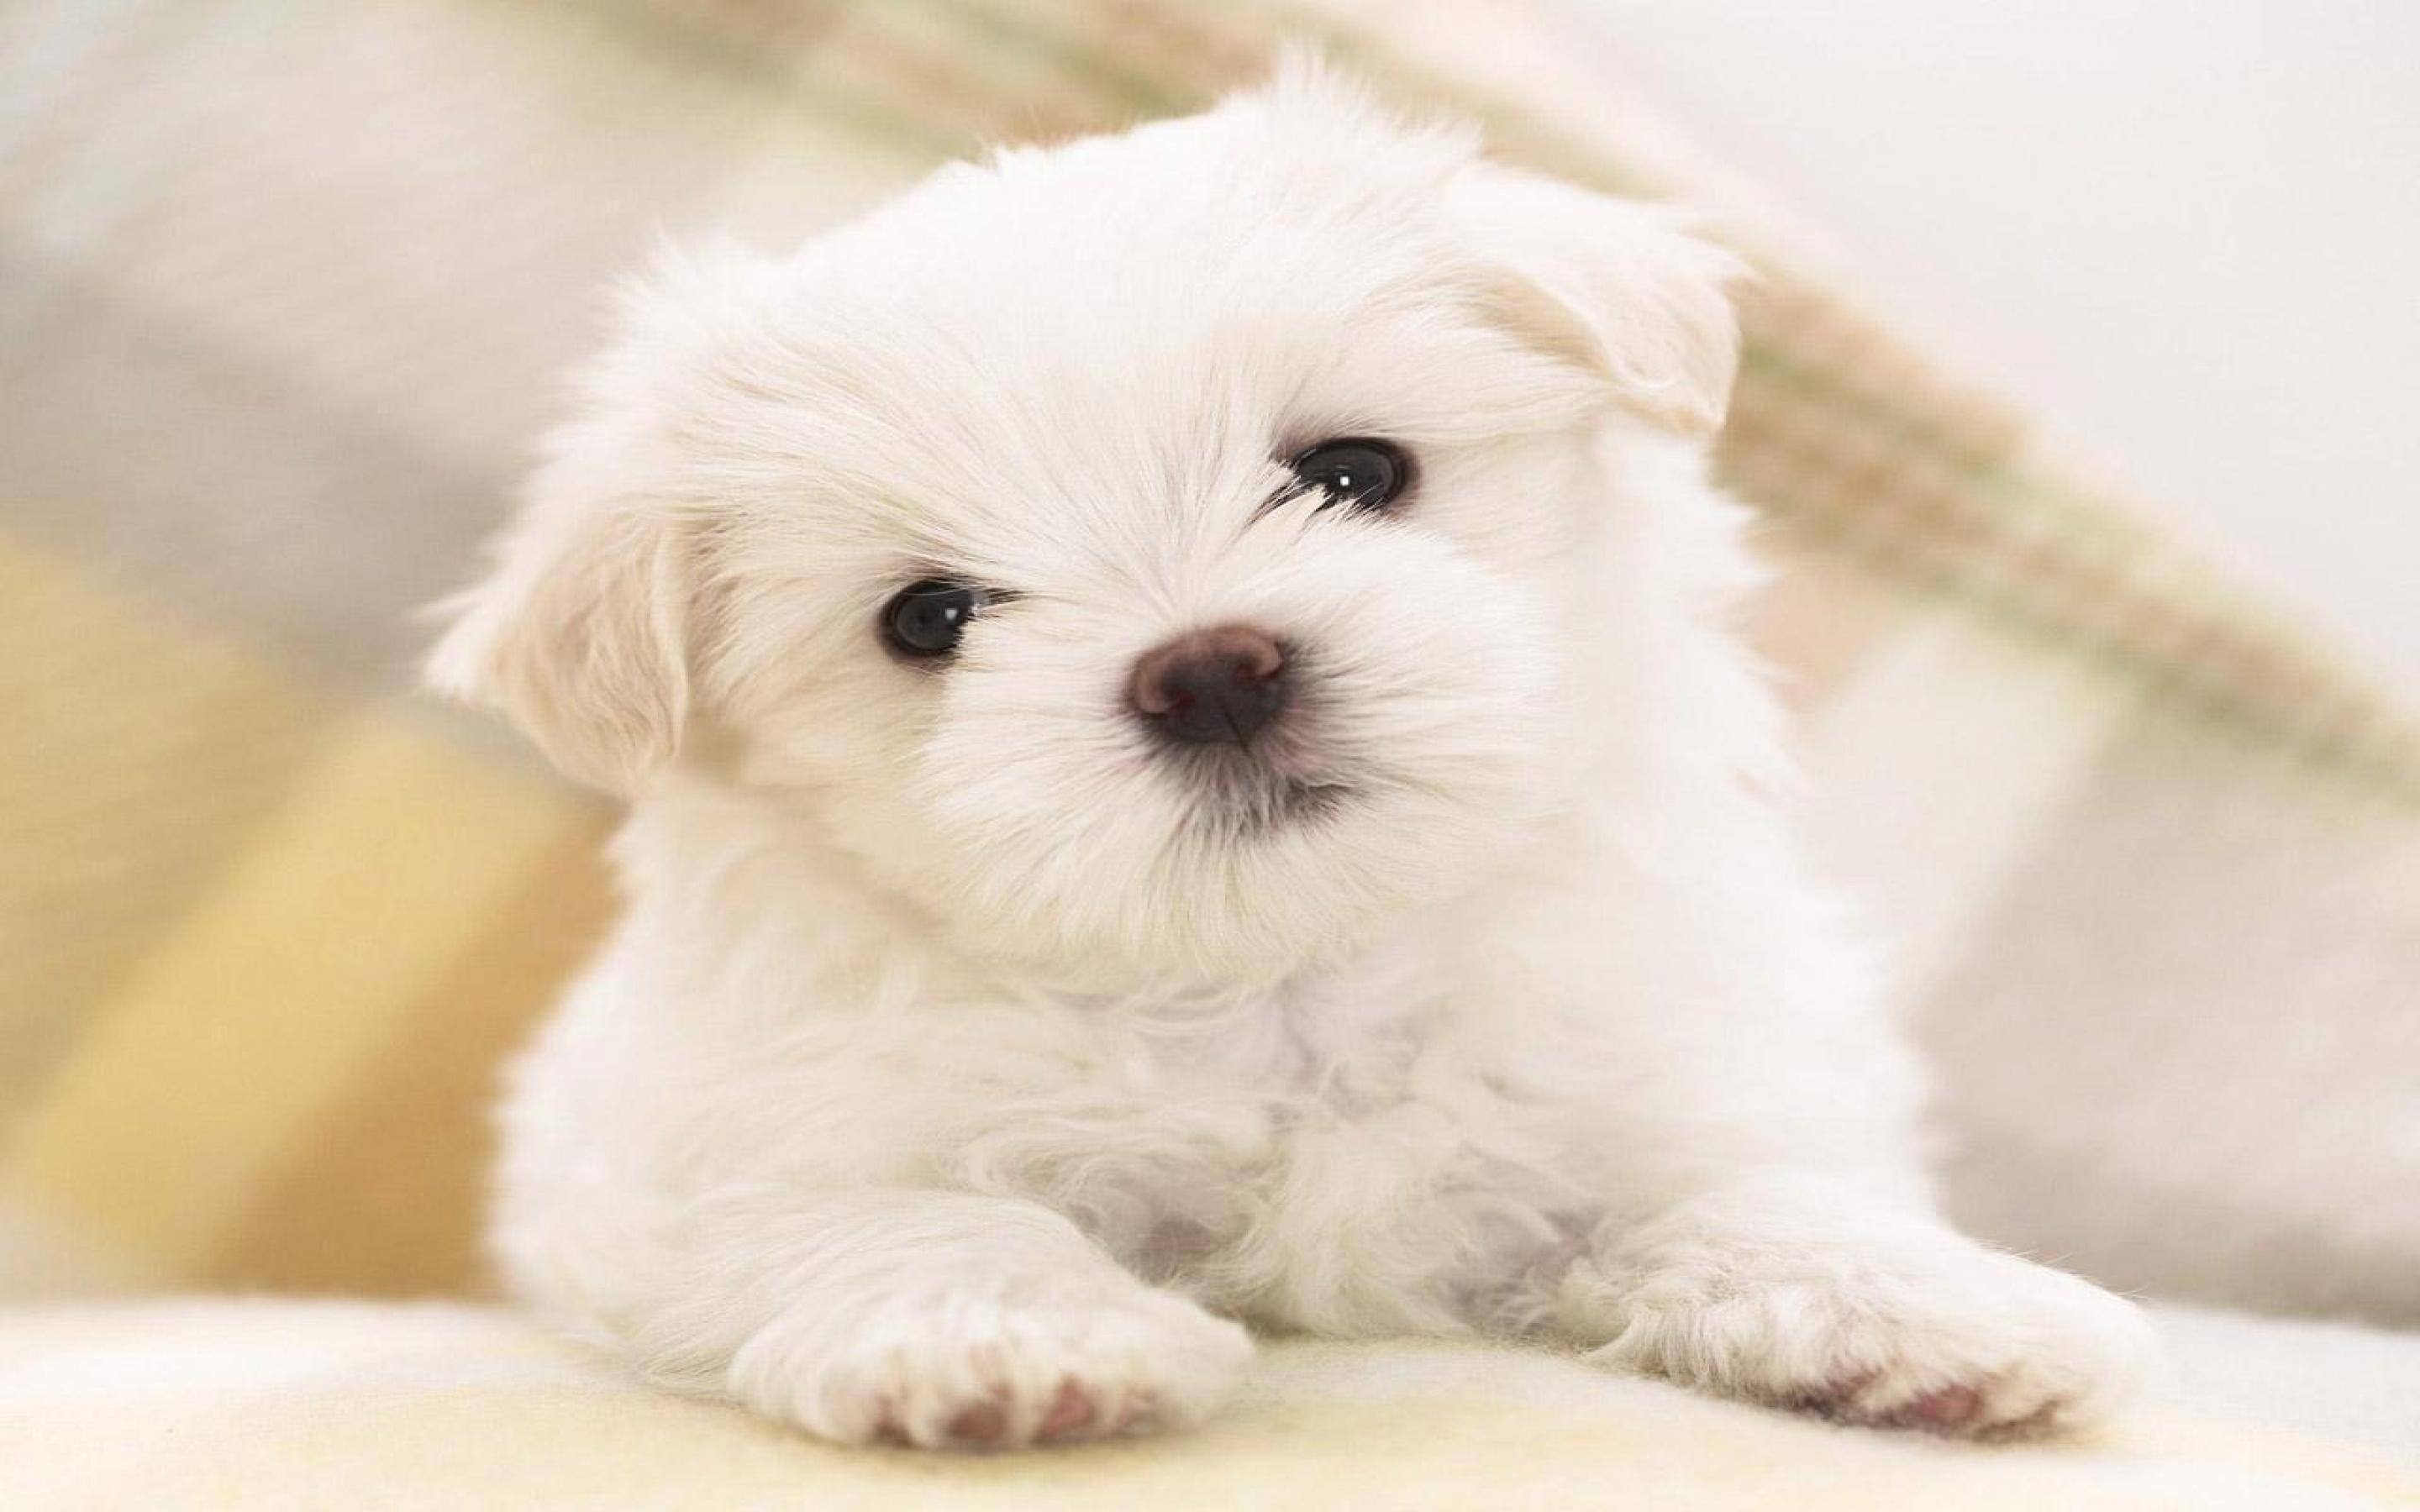 Cute Dog HD Wallpapers for all resolution HD 2880x1800 Cute 2880x1800